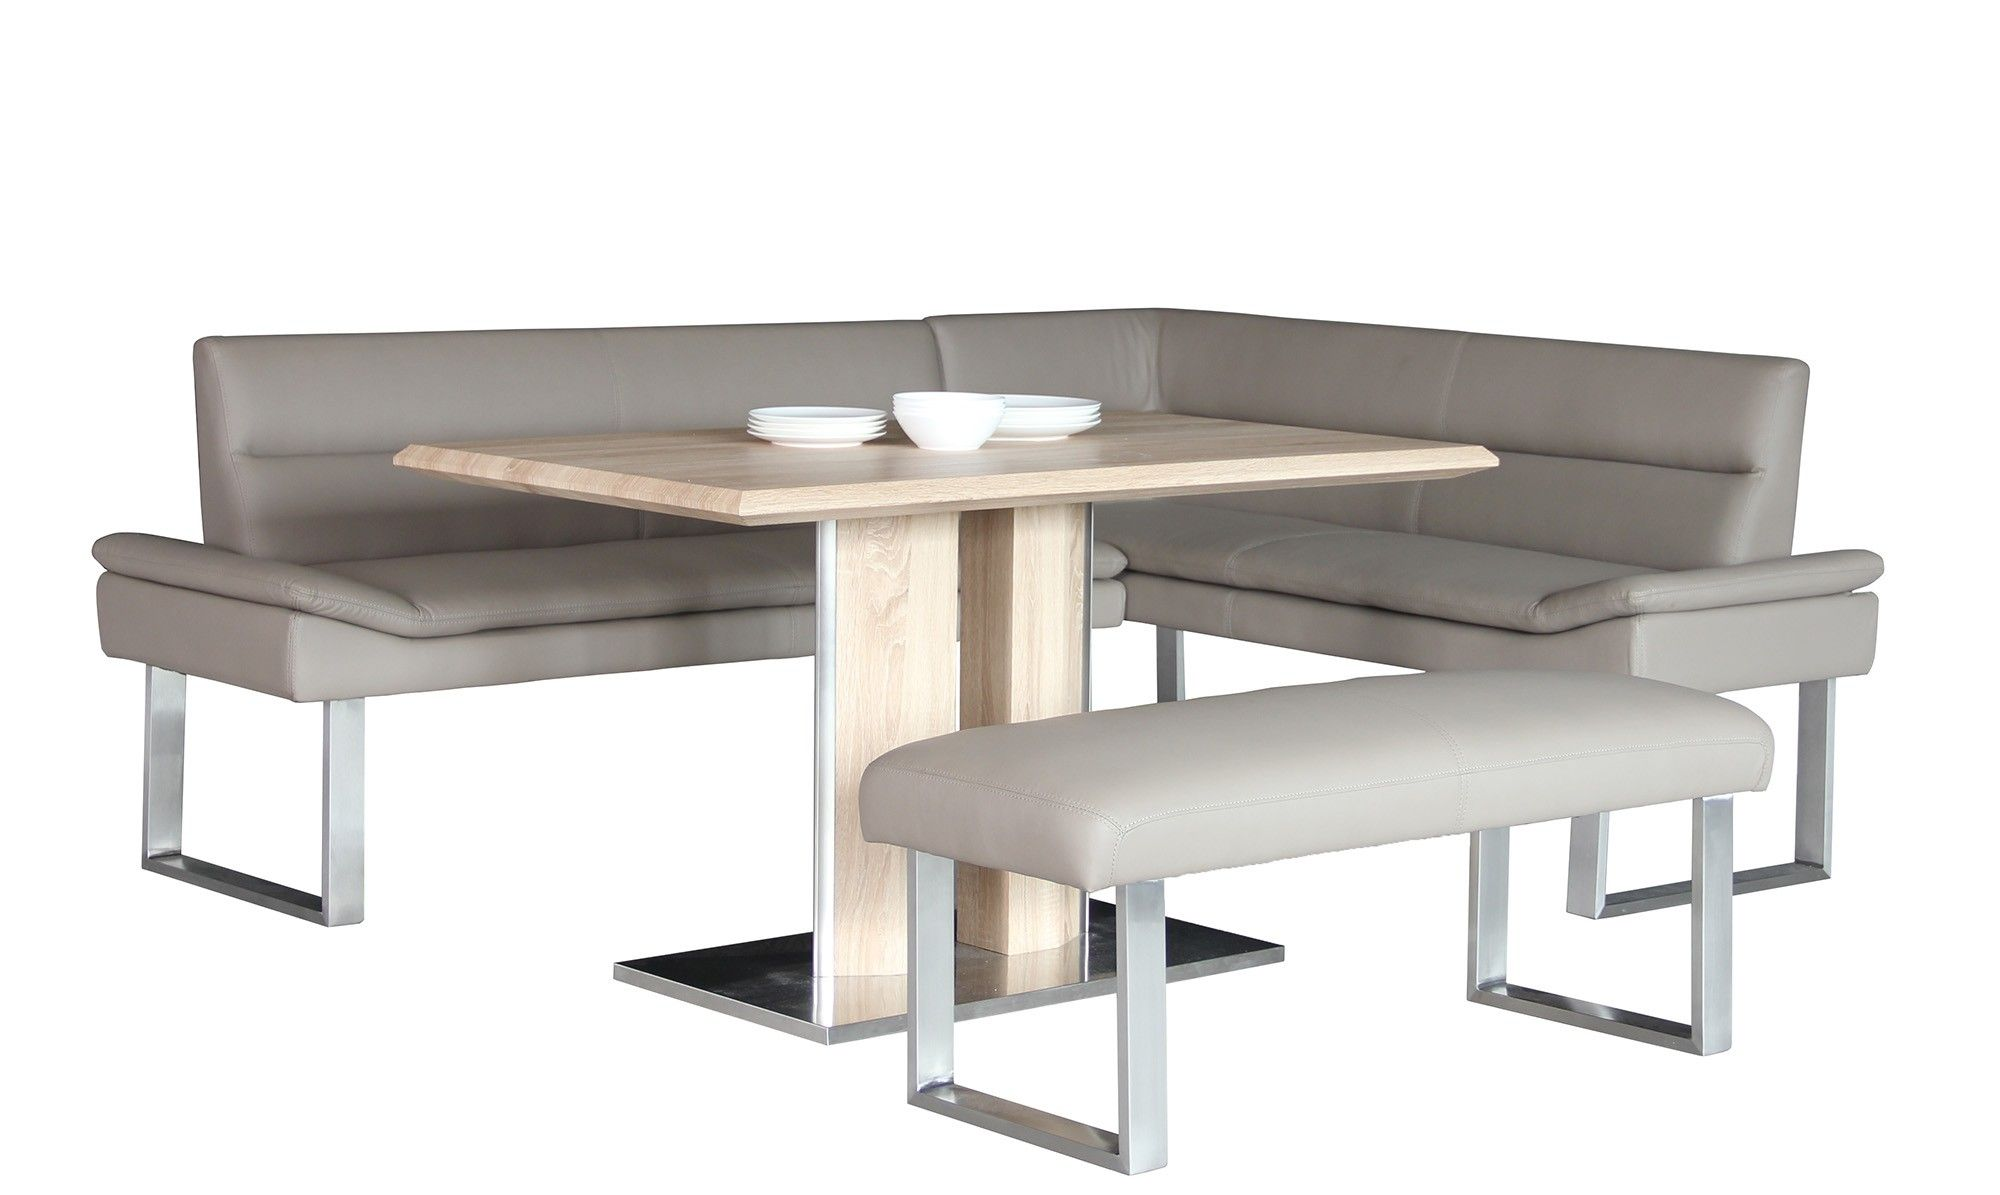 Ligano+ +Corner+Dining+Set Corner Bench Dining Set, Dining Table With